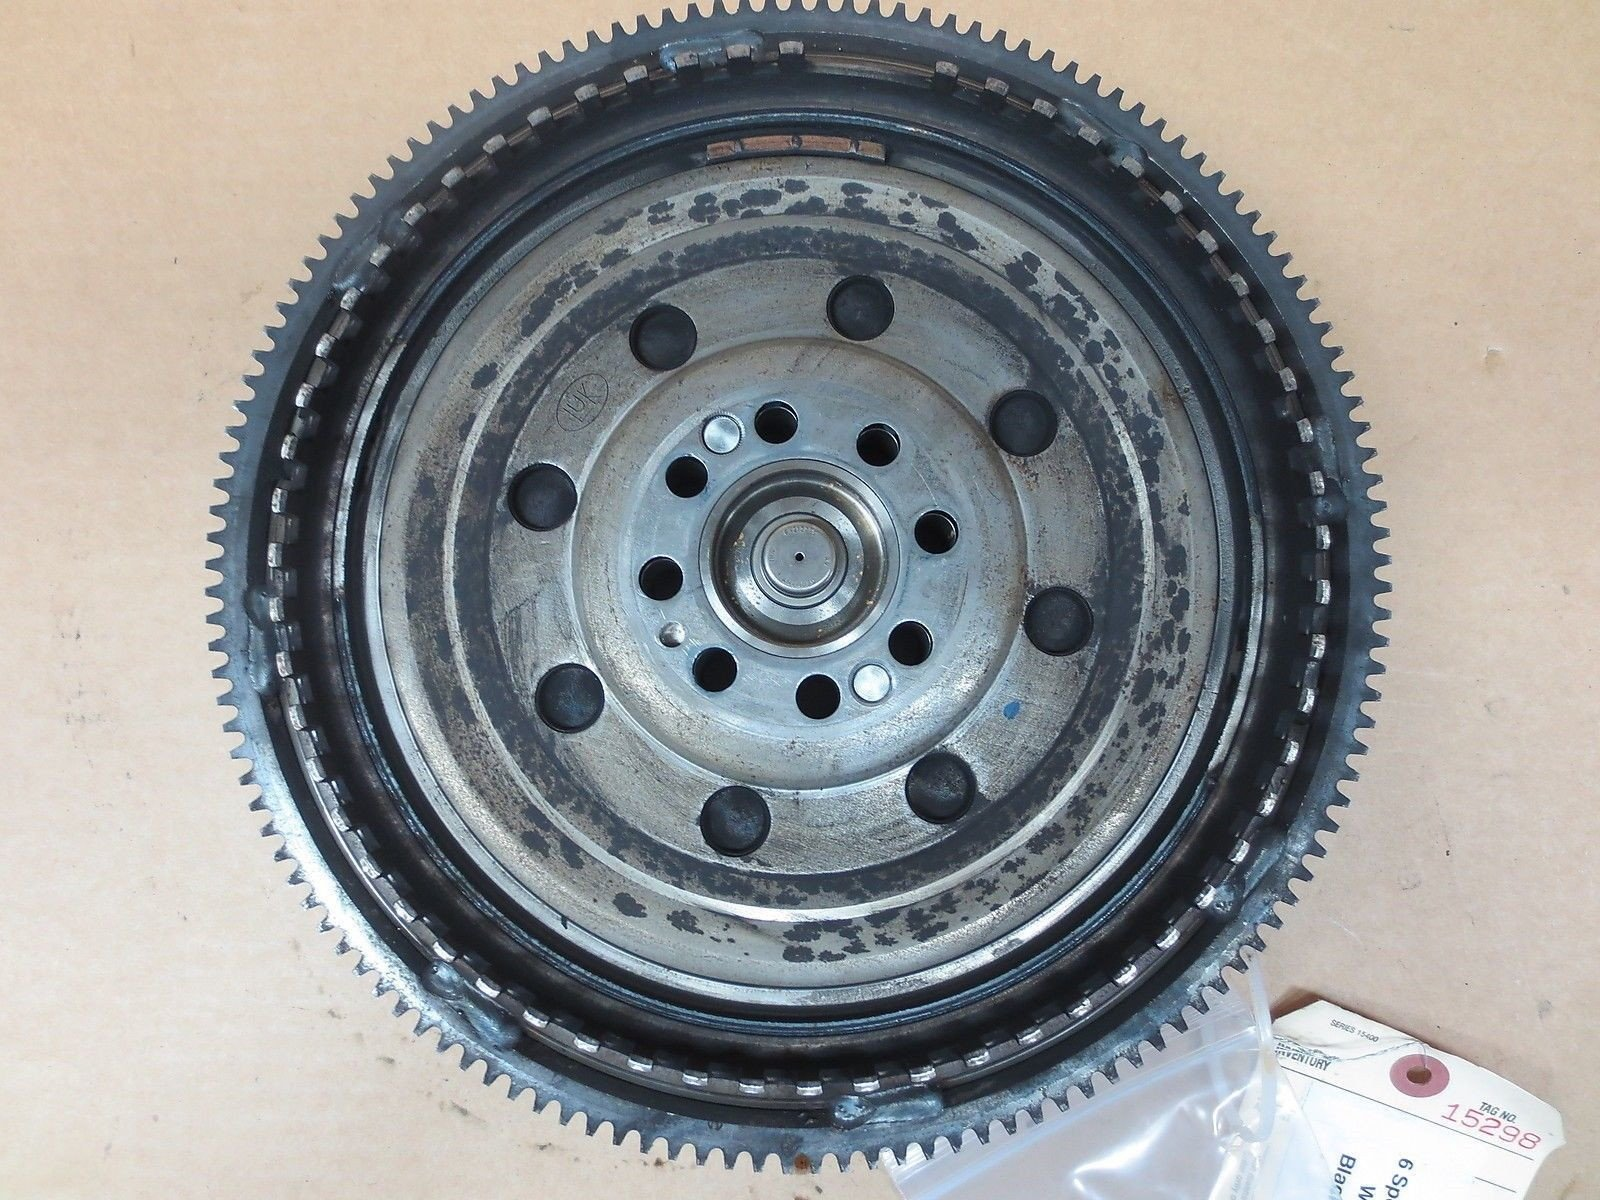 08 Boxster S RWD Porsche 987 Convertible DUAL MASS FLYWHEEL + Bolts 39,614